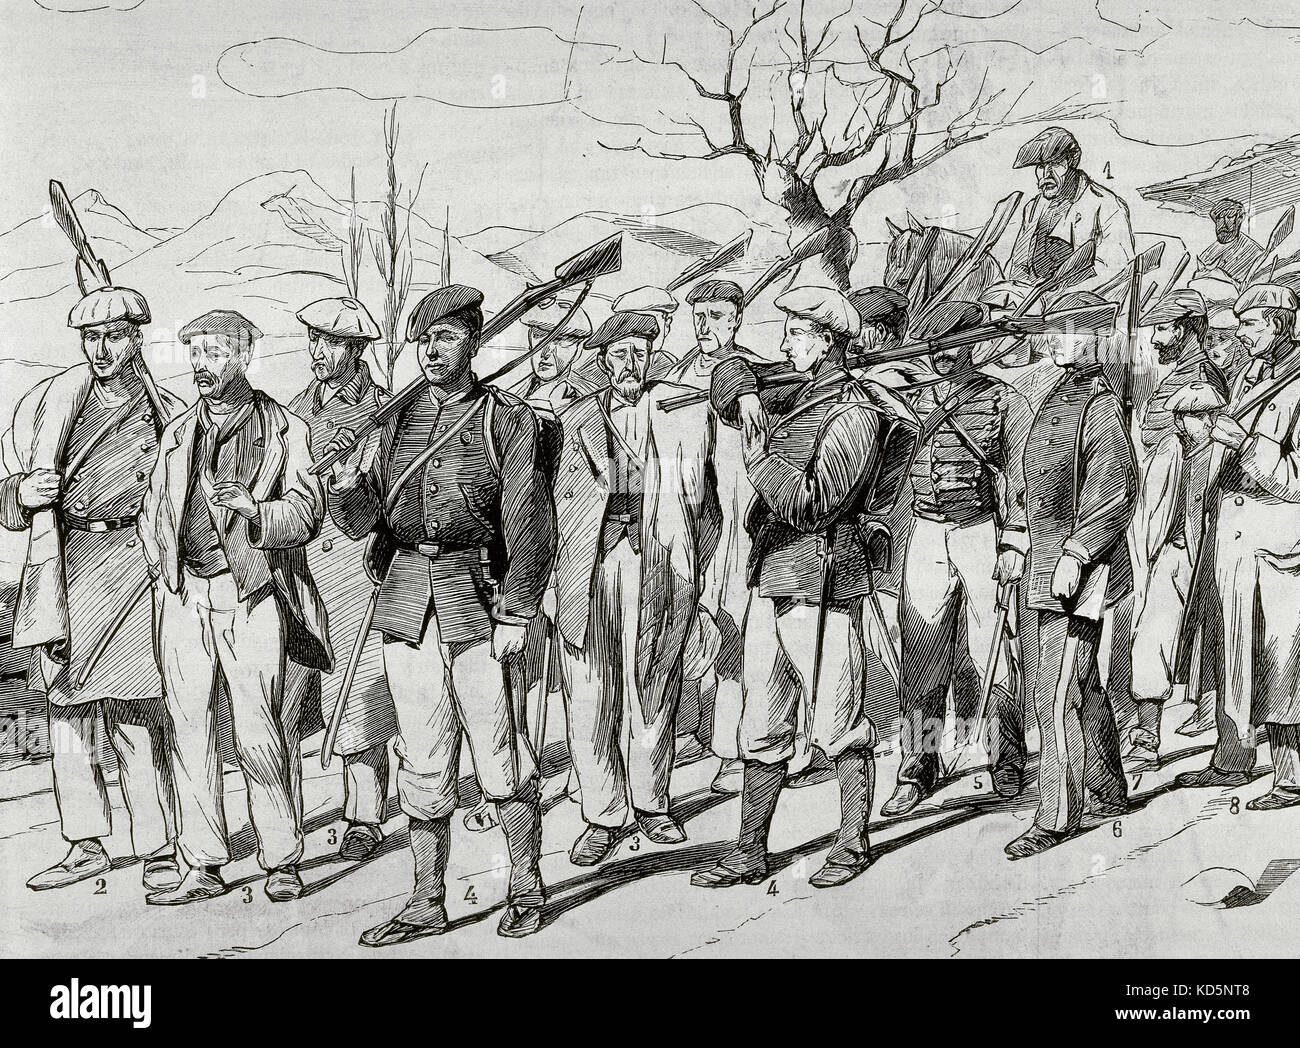 Third Carlist War (1872-1876). Presentation of Carlists to pardon at the  headquarters in Alsasua (Navarra). Engraving by Jose Luis Pellicer Montseny.